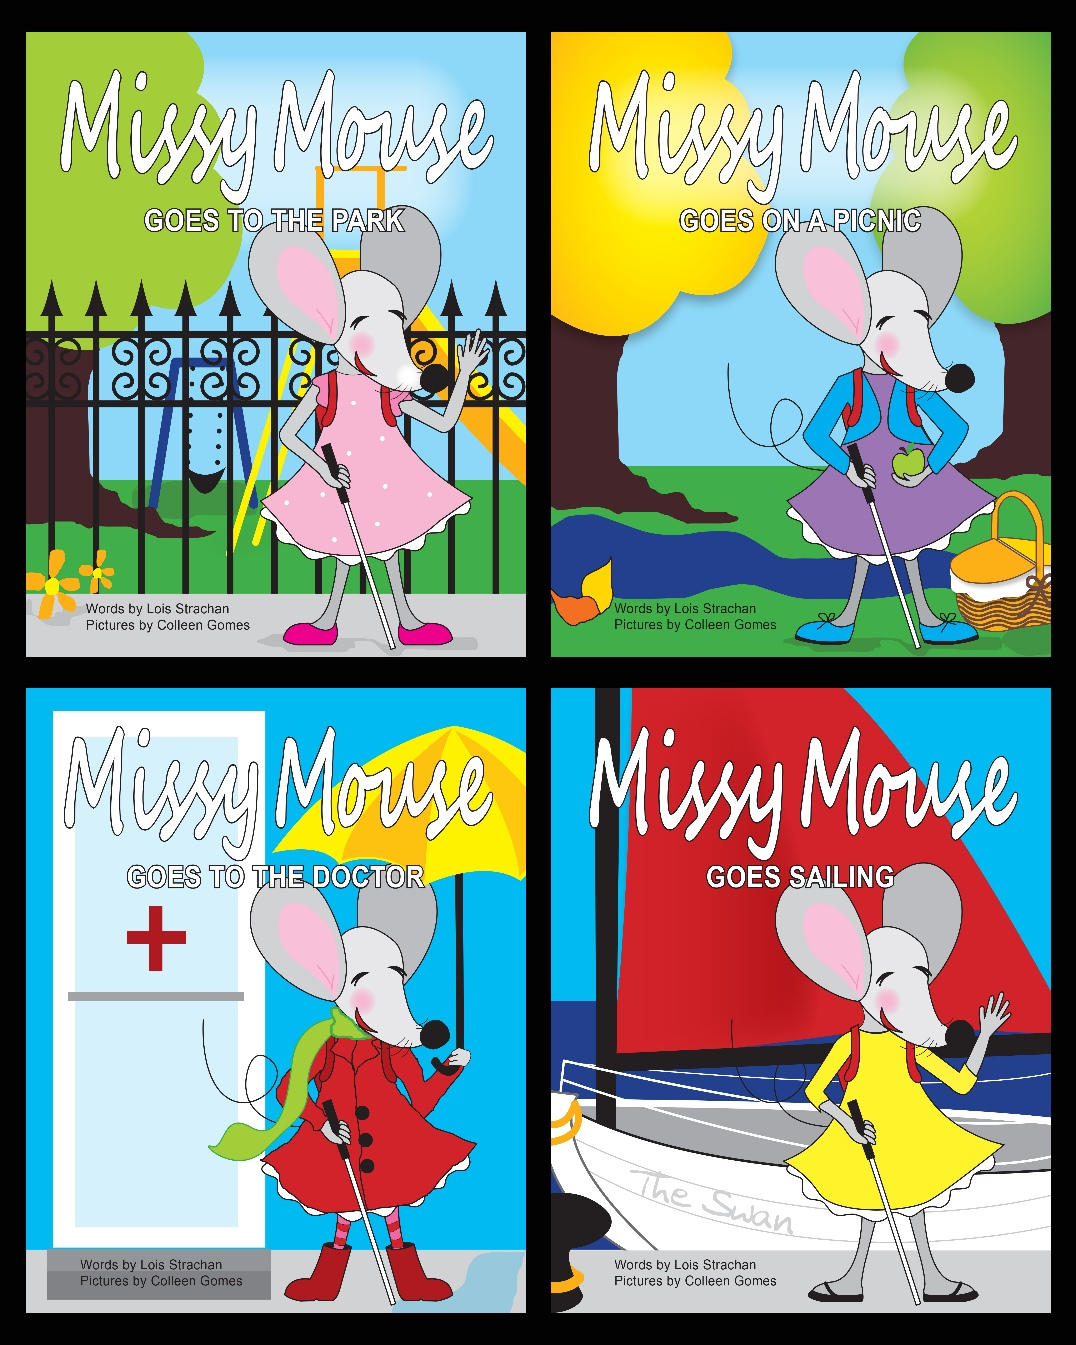 Missy Mouse Lois Strachan